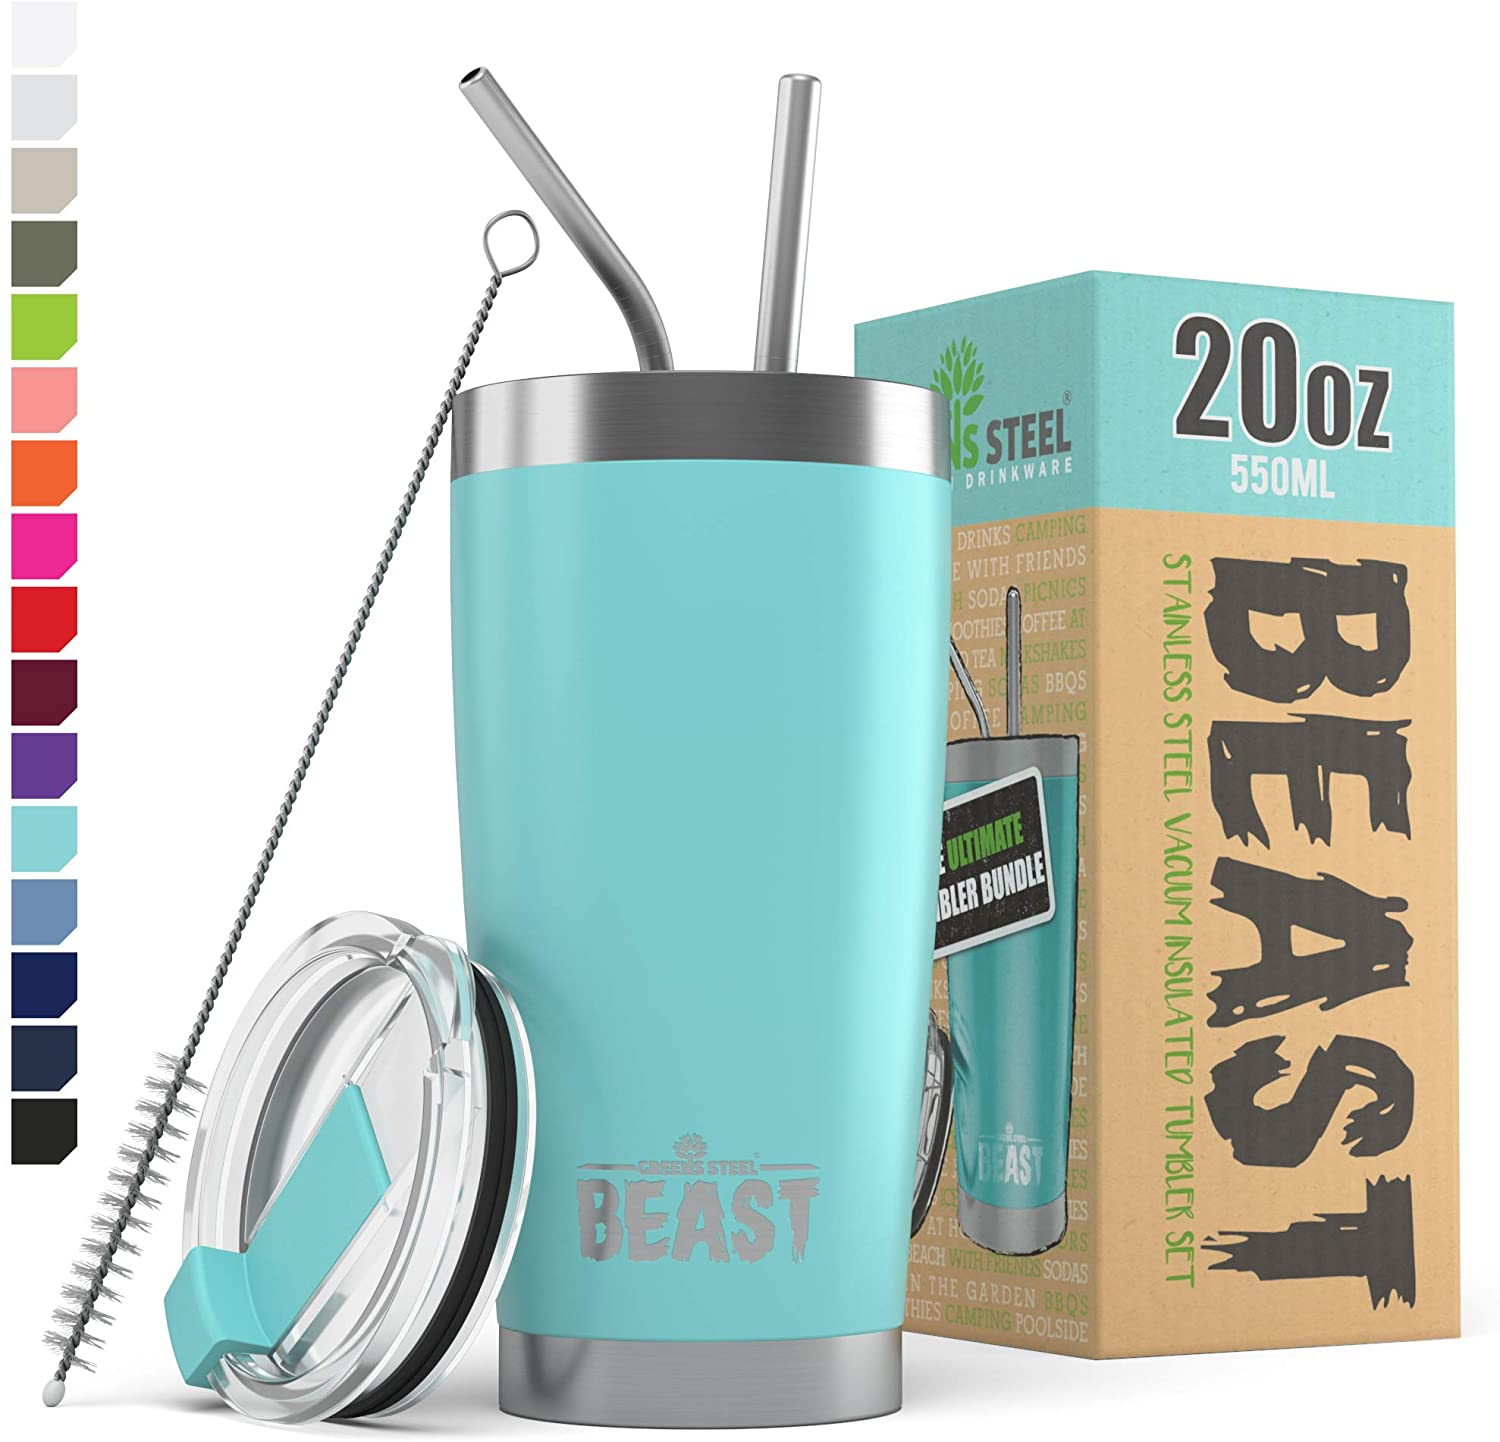 BEAST 20oz. Tumbler Insulated Stainless Steel